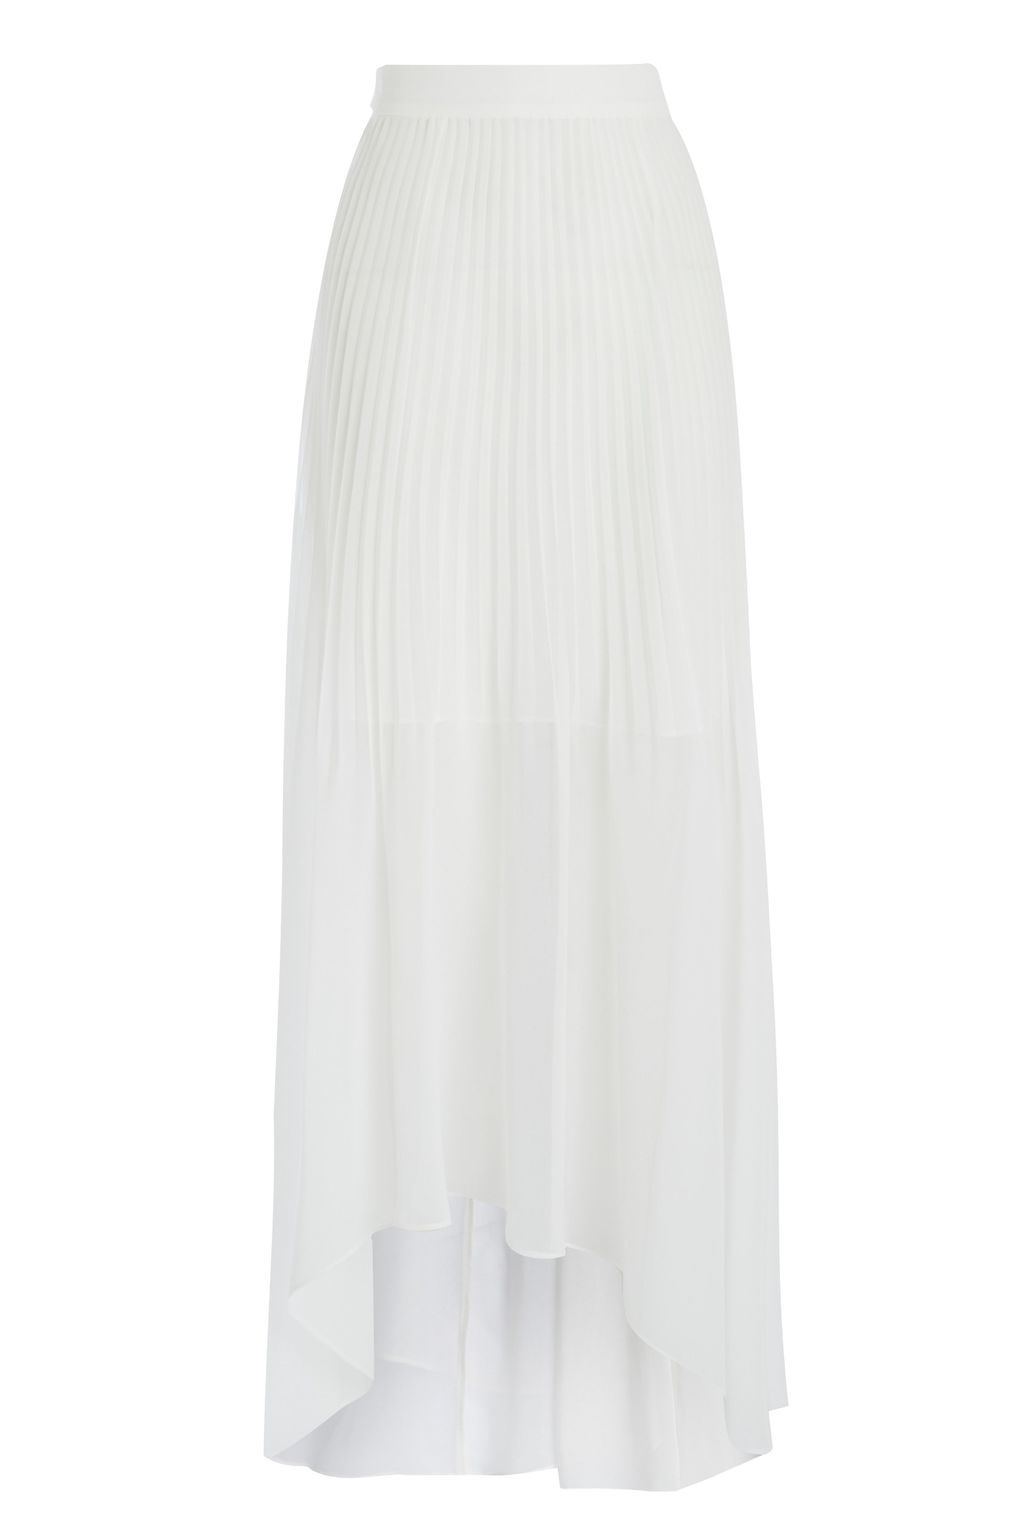 Toola Skirt, Ivory - pattern: plain; length: ankle length; fit: loose/voluminous; style: pleated; waist: high rise; predominant colour: white; fibres: polyester/polyamide - 100%; occasions: occasion; hip detail: soft pleats at hip/draping at hip/flared at hip; pattern type: fabric; texture group: other - light to midweight; season: s/s 2016; wardrobe: event